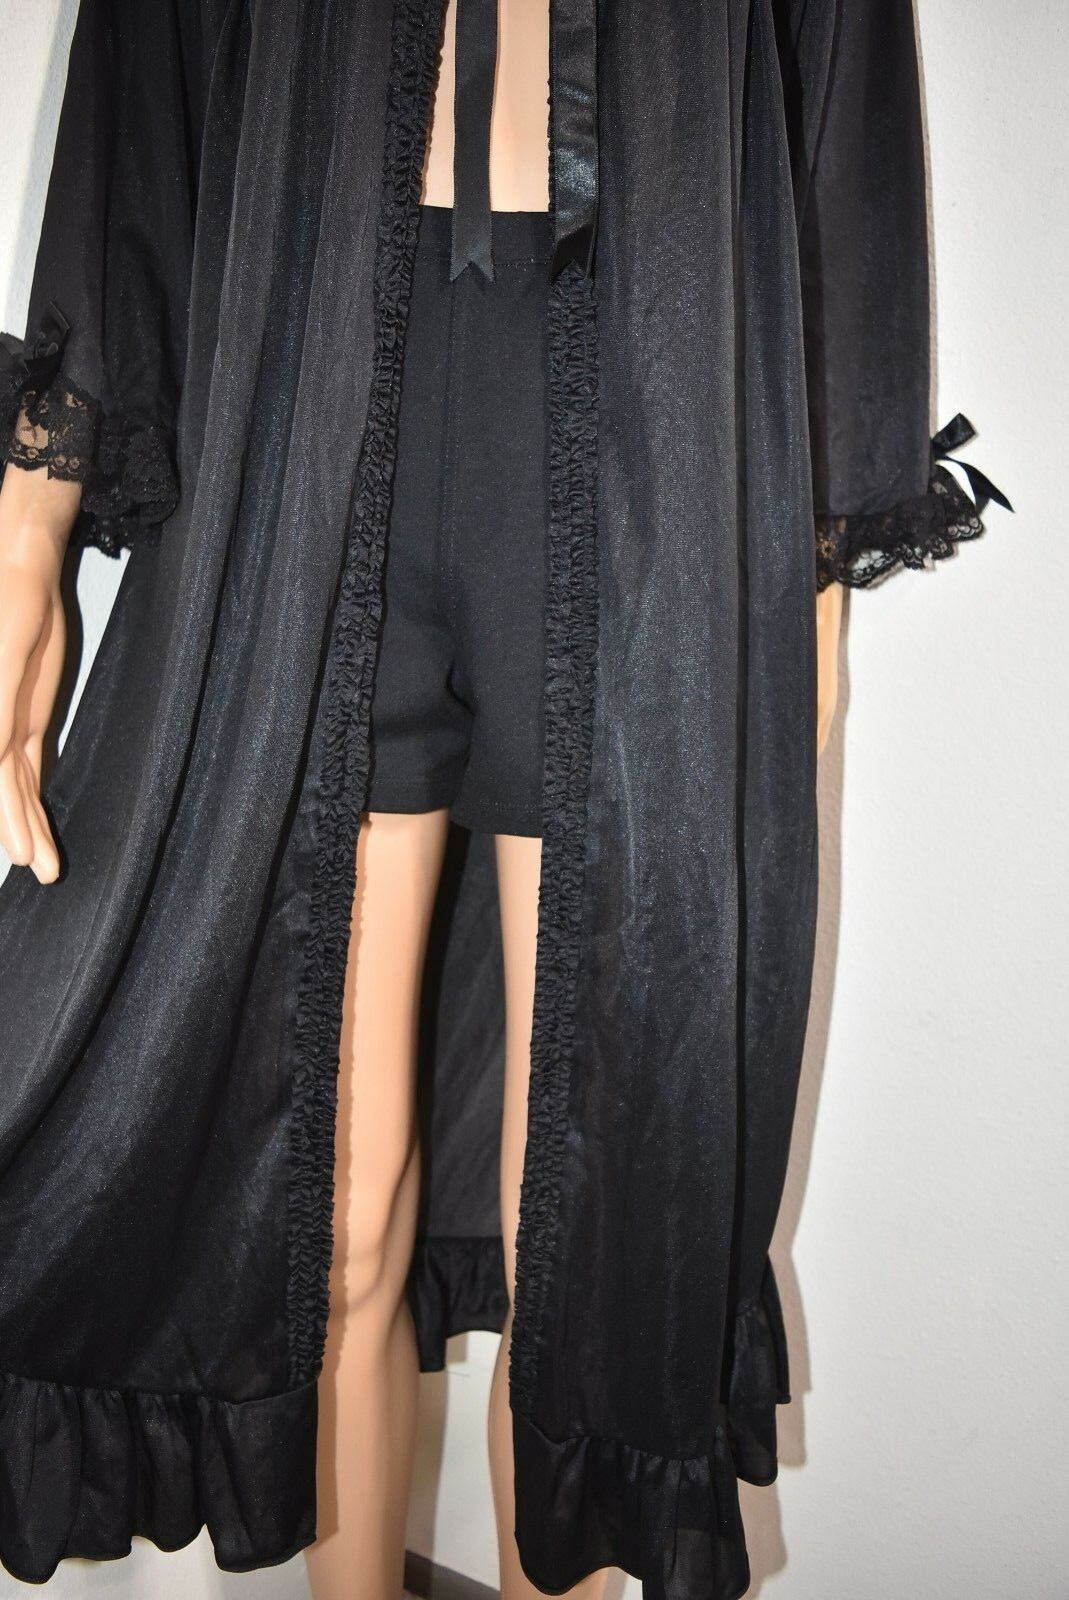 Vtg Peignoir Robe Embroider Floral lace black Ruf… - image 5